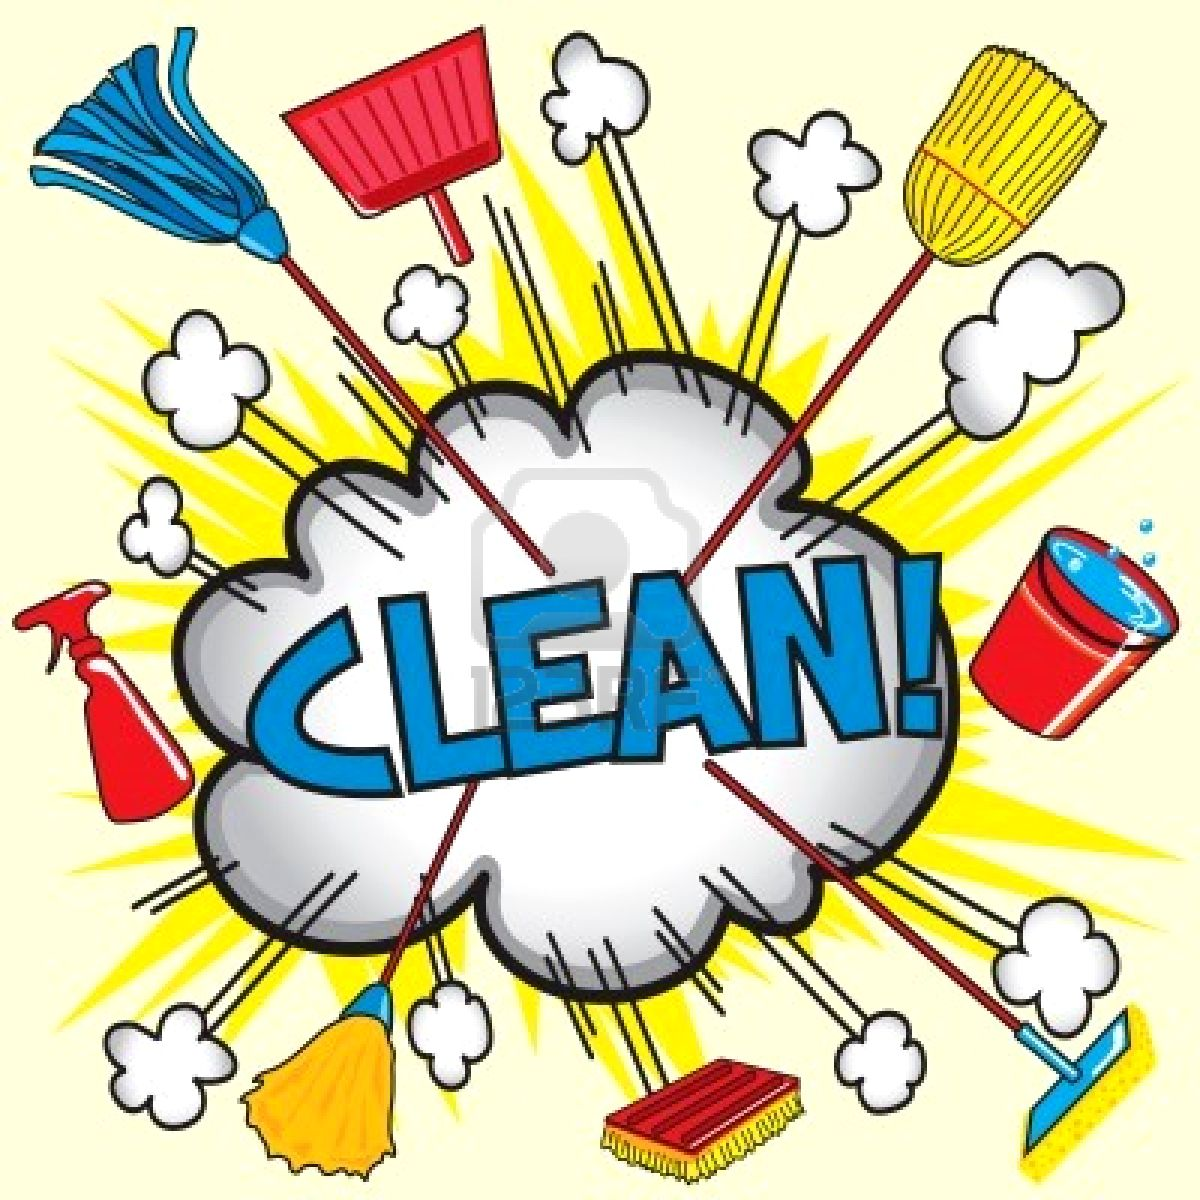 Clean Up Toys Clipart Clipart Panda Free-Clean Up Toys Clipart Clipart Panda Free Clipart Images-7